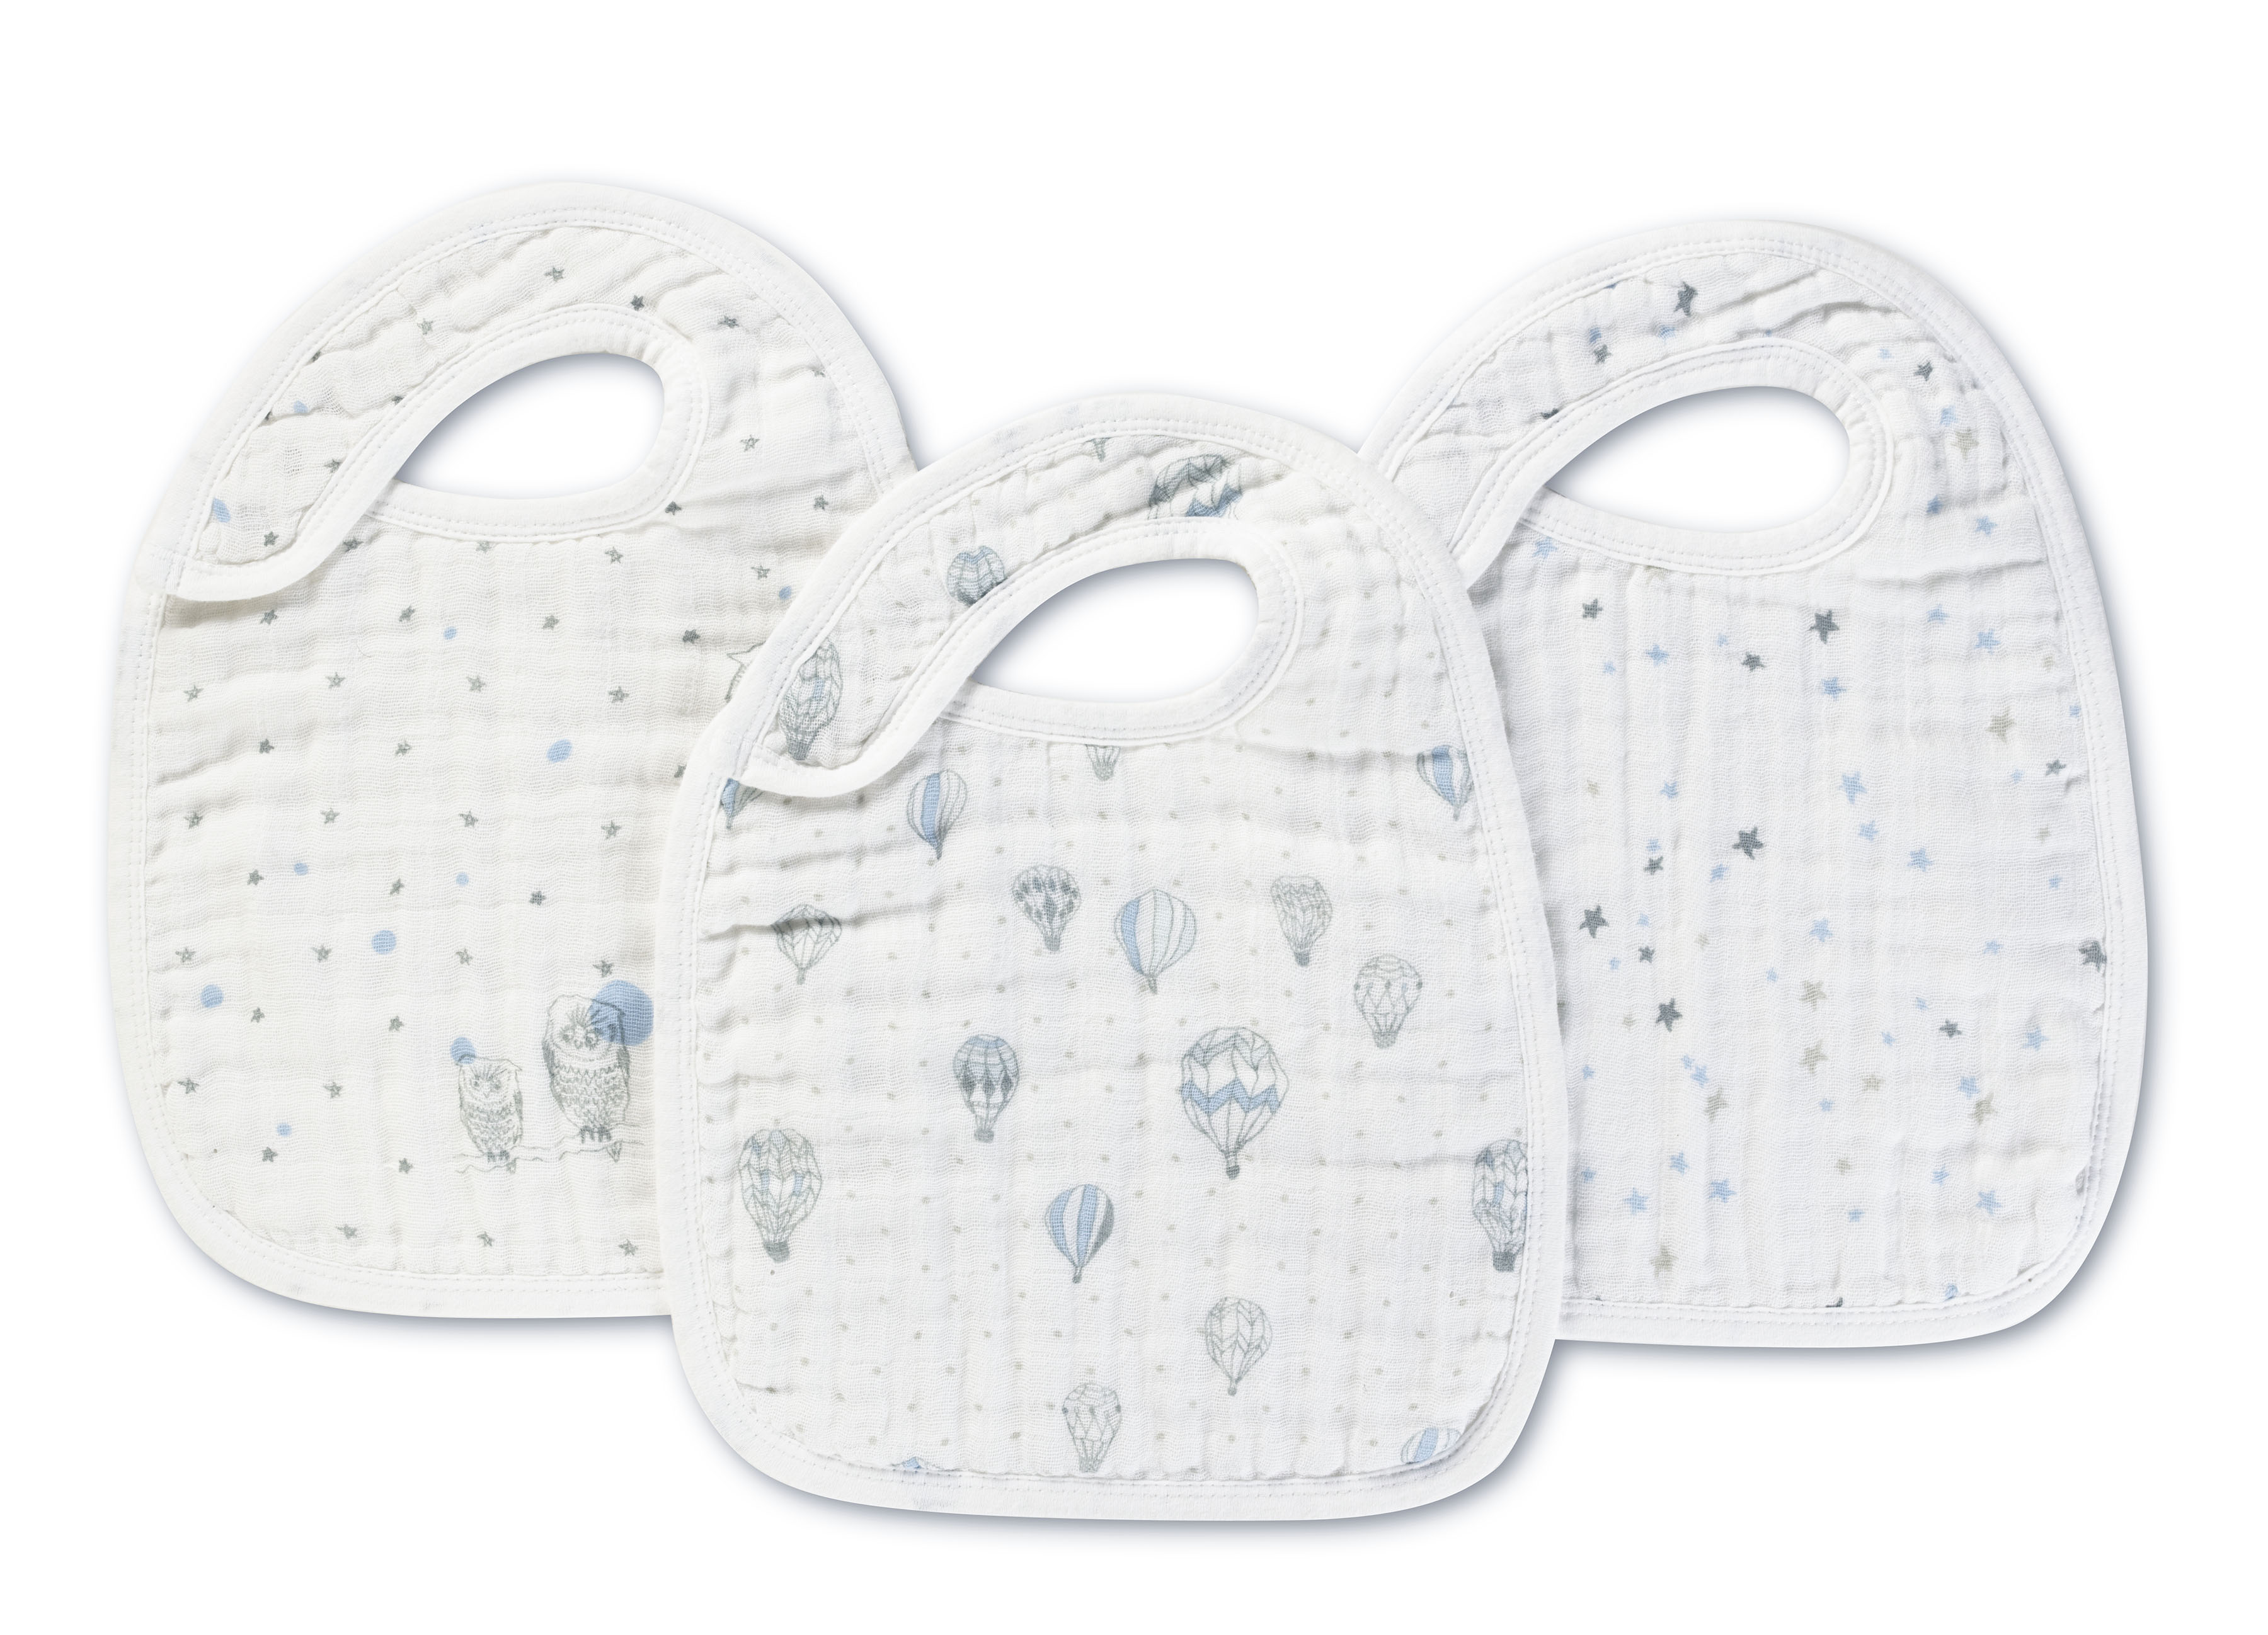 aden and anais snap bibs - night sky